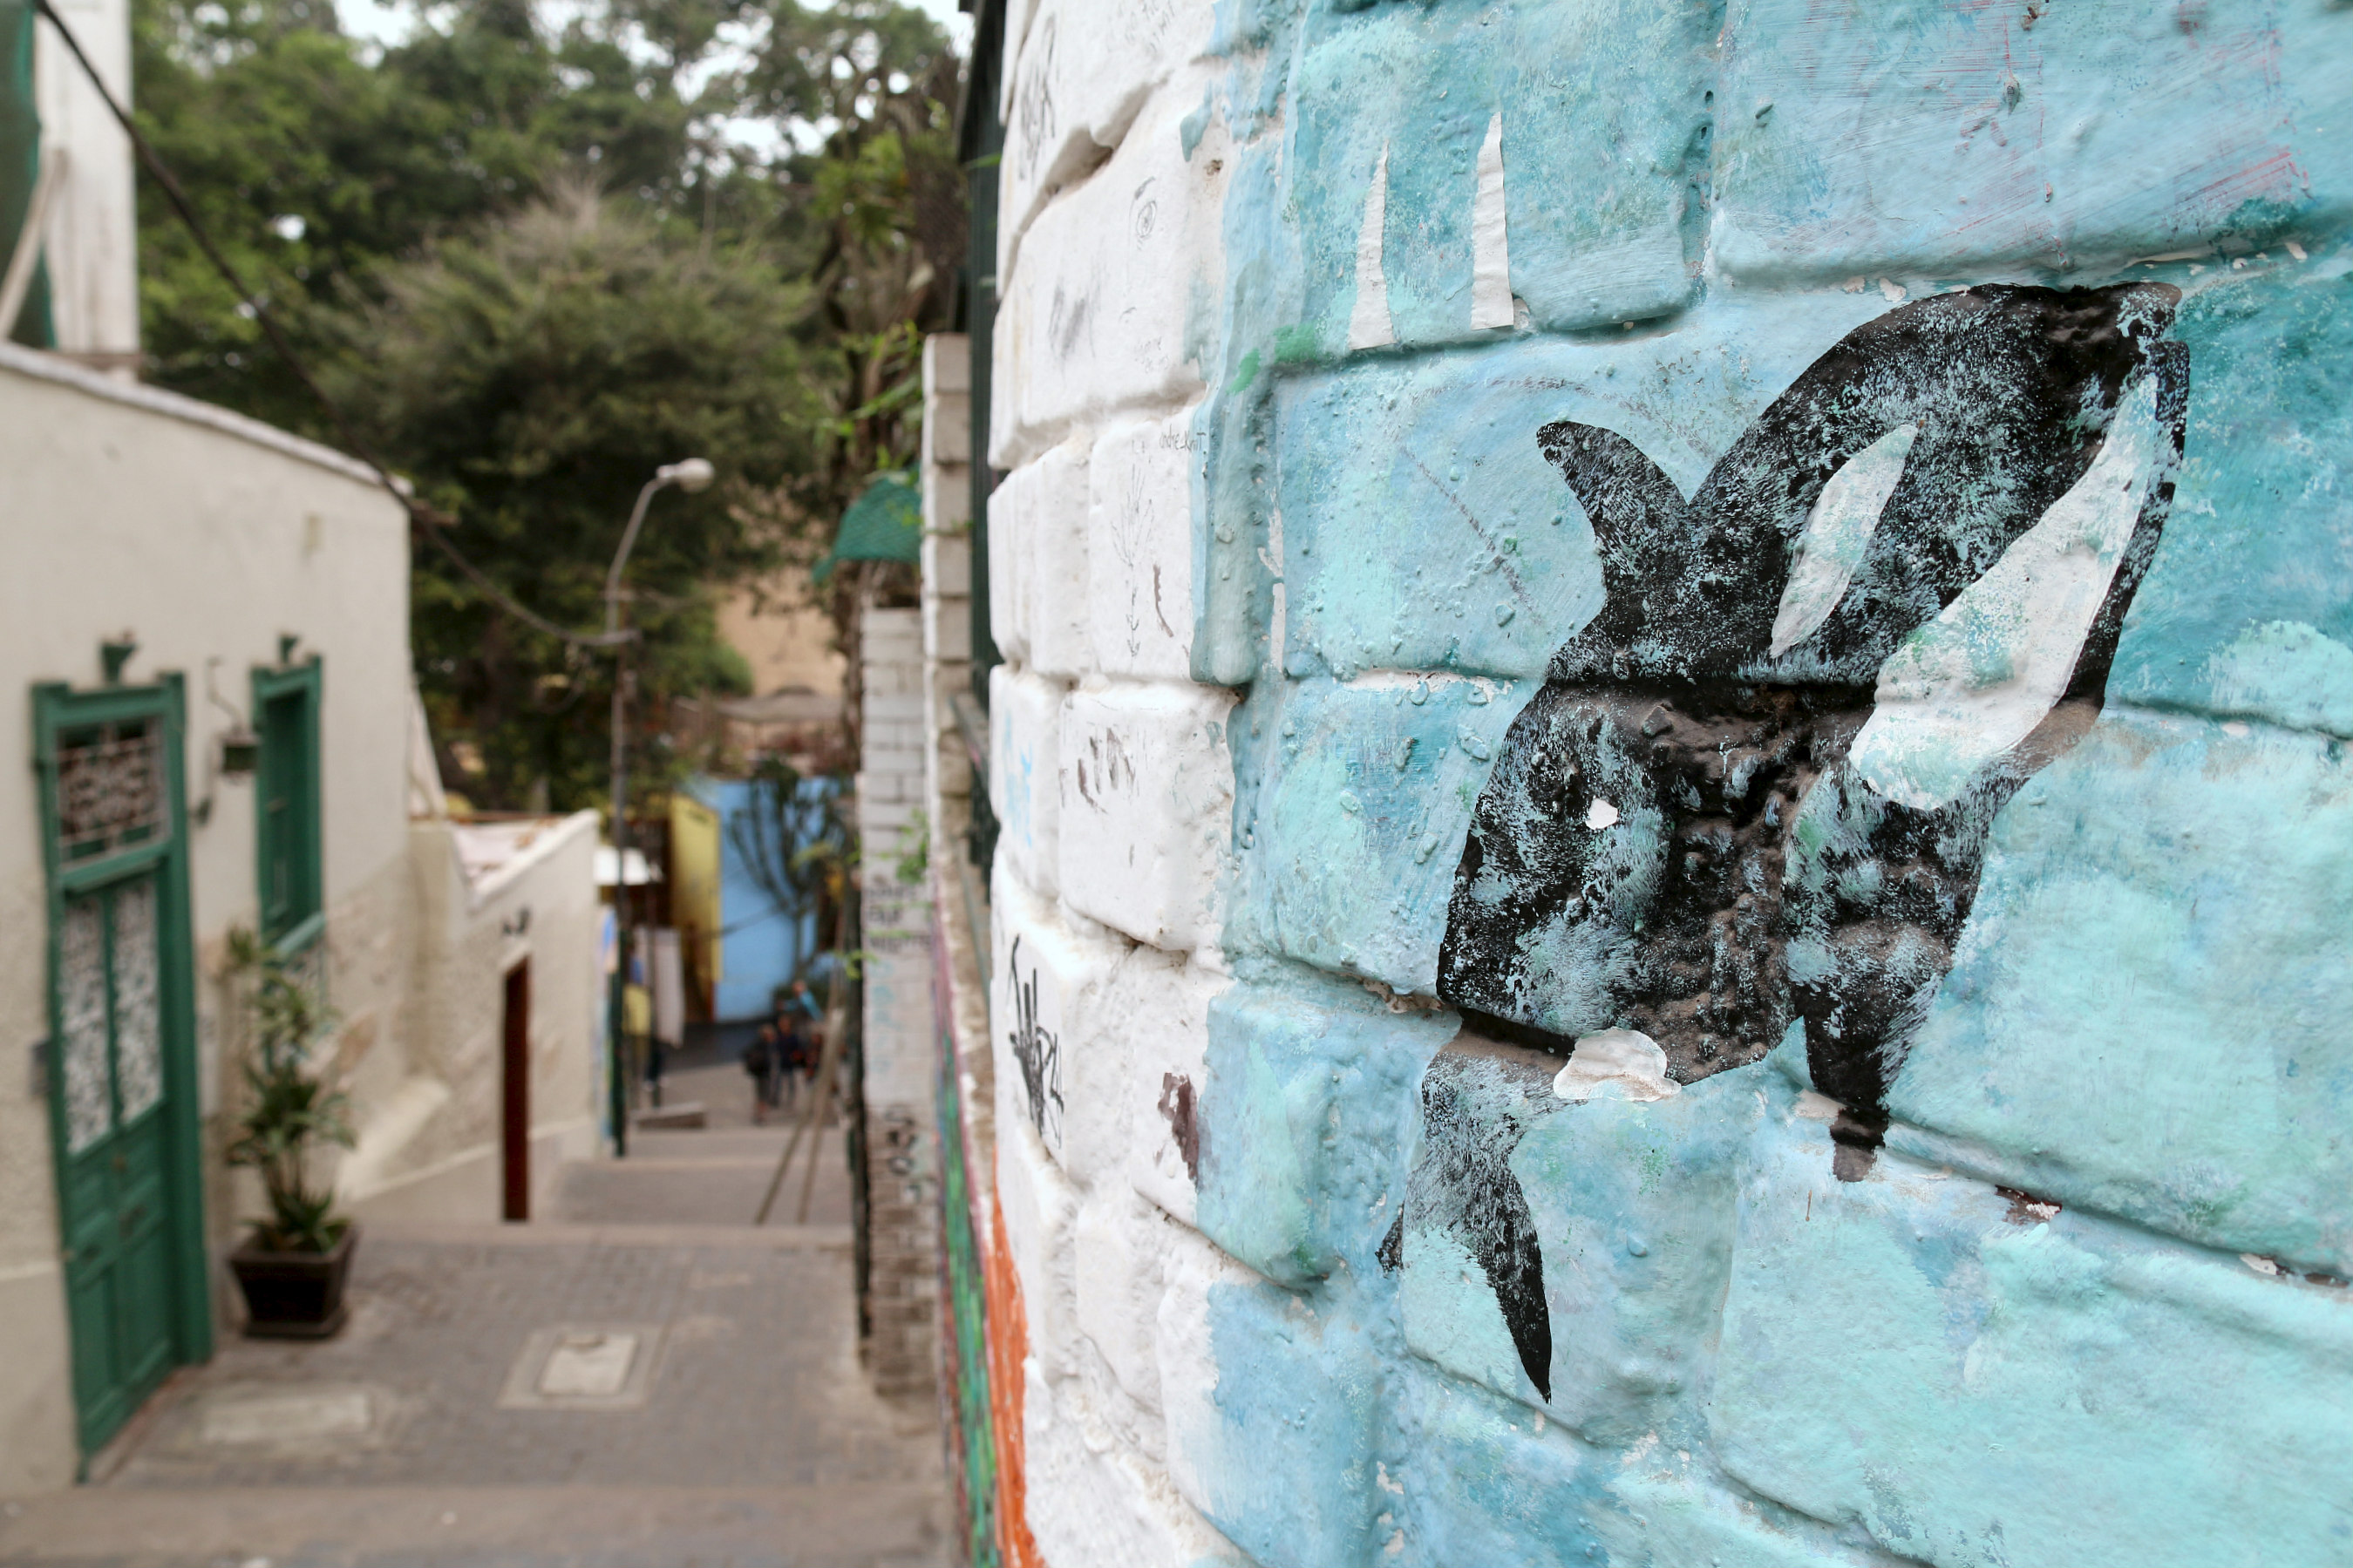 where to to find street art in Barranco, Lima along Oraya stairs. Whales by Seamanoid